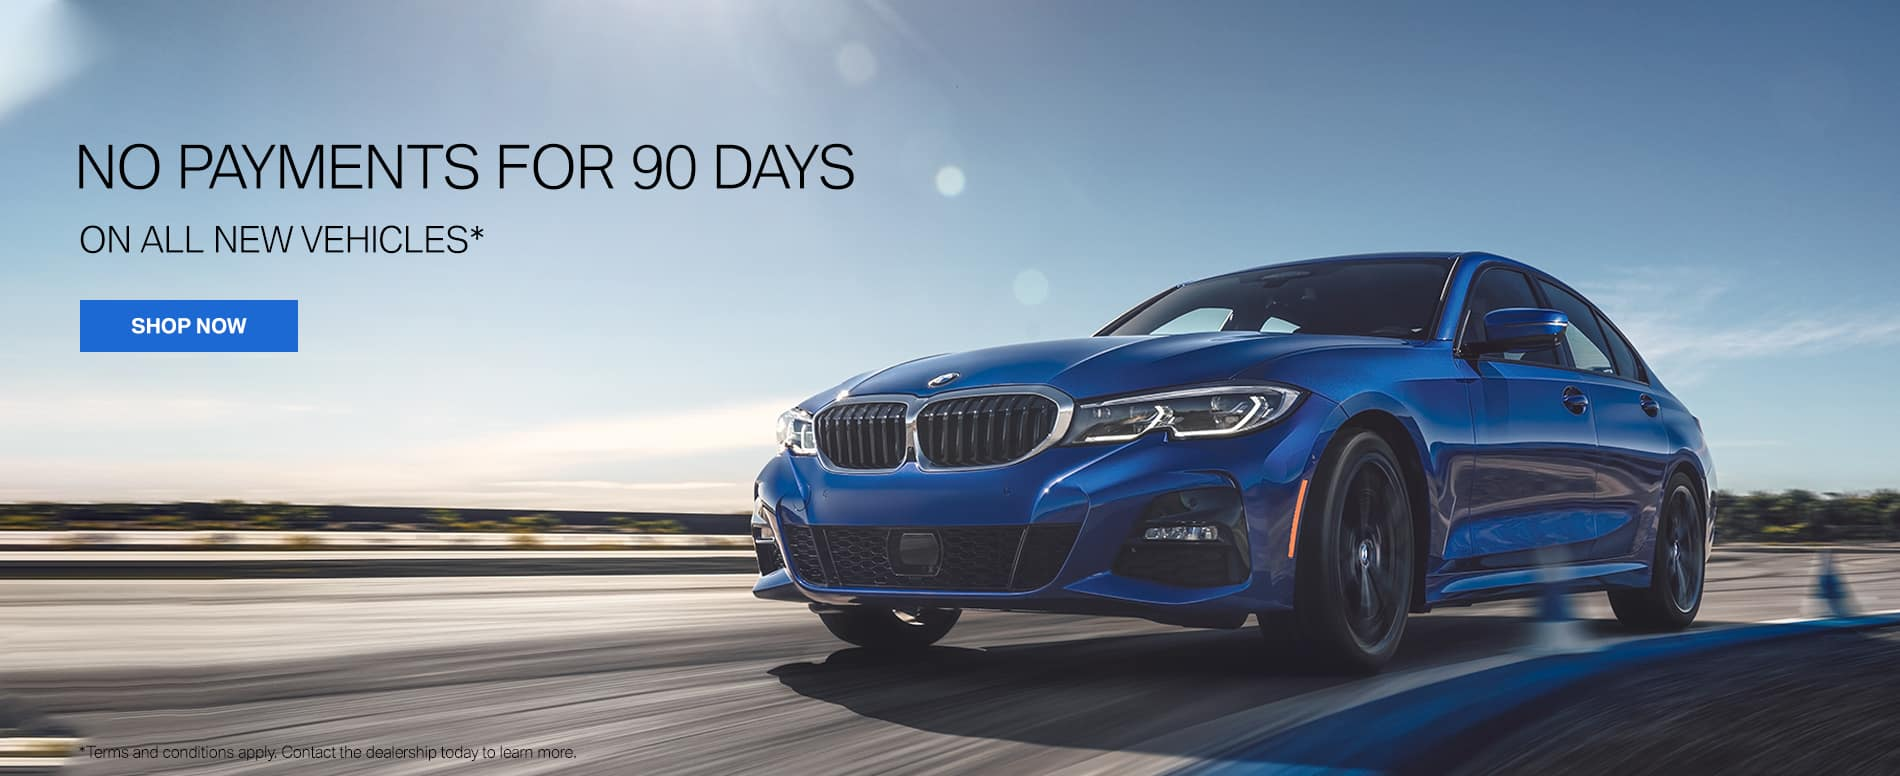 Tulley BMW Nashua 90 Days to First Payment on New Vehicles